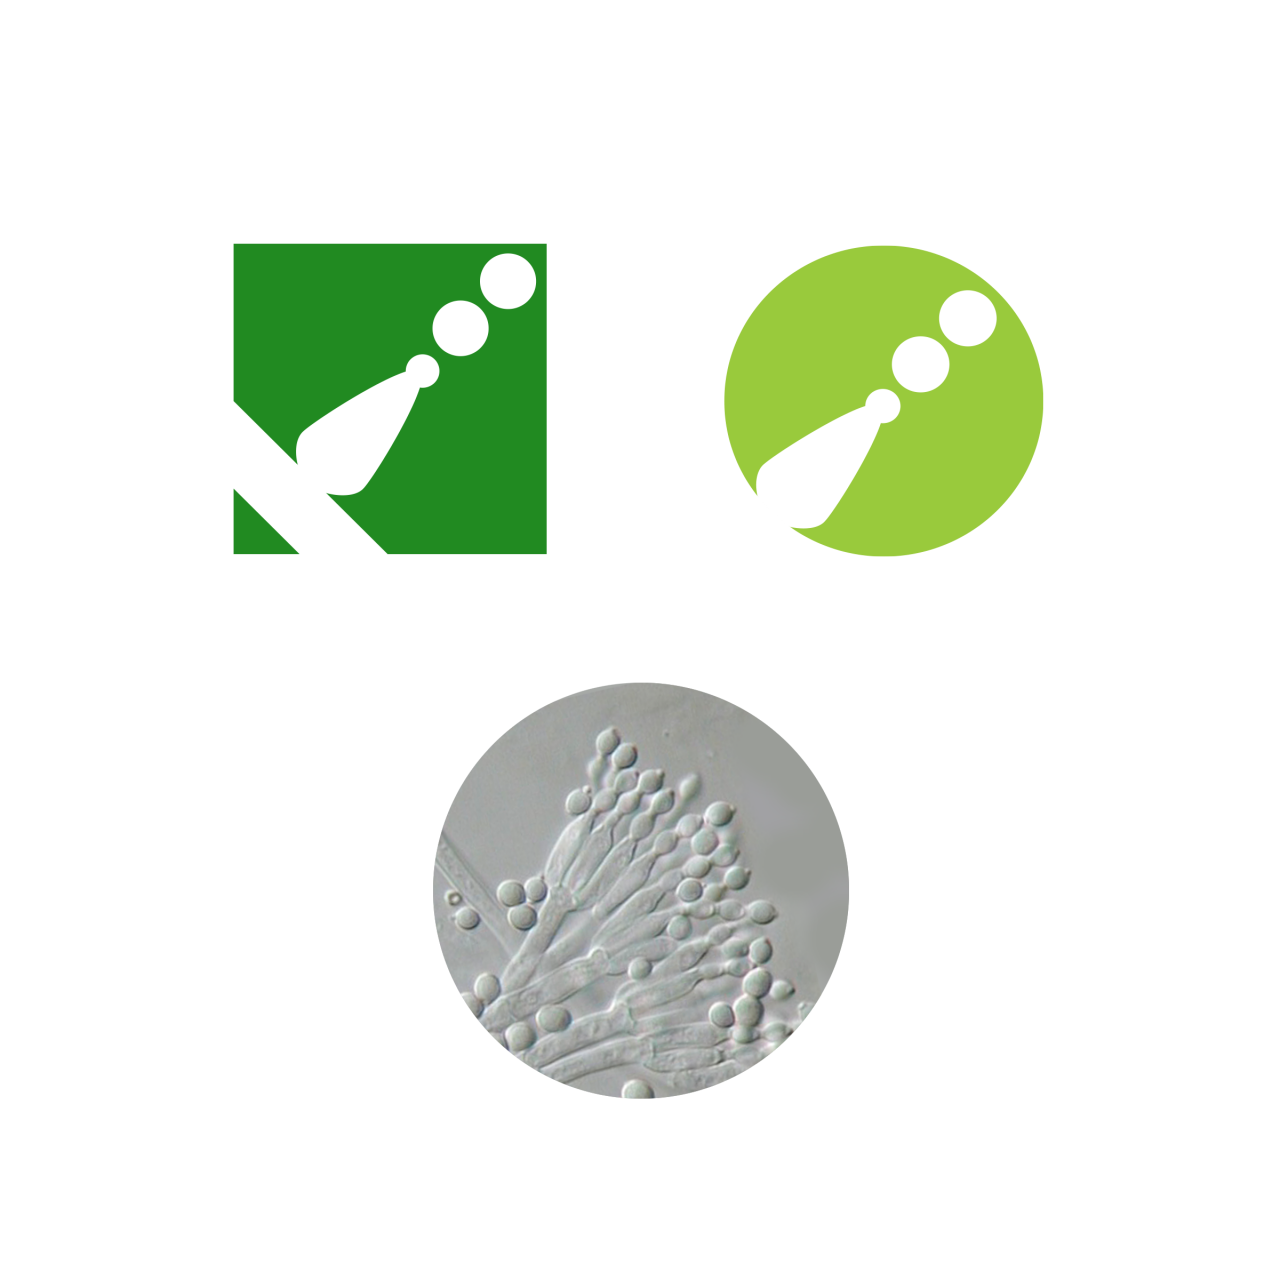 Image of Sporometrics logo icons. Top-left: old icon. Top Right: New Icon. Bottom: Microscope photograph of <em>Penicillium, Penicillium Spores Conidiophores</em>